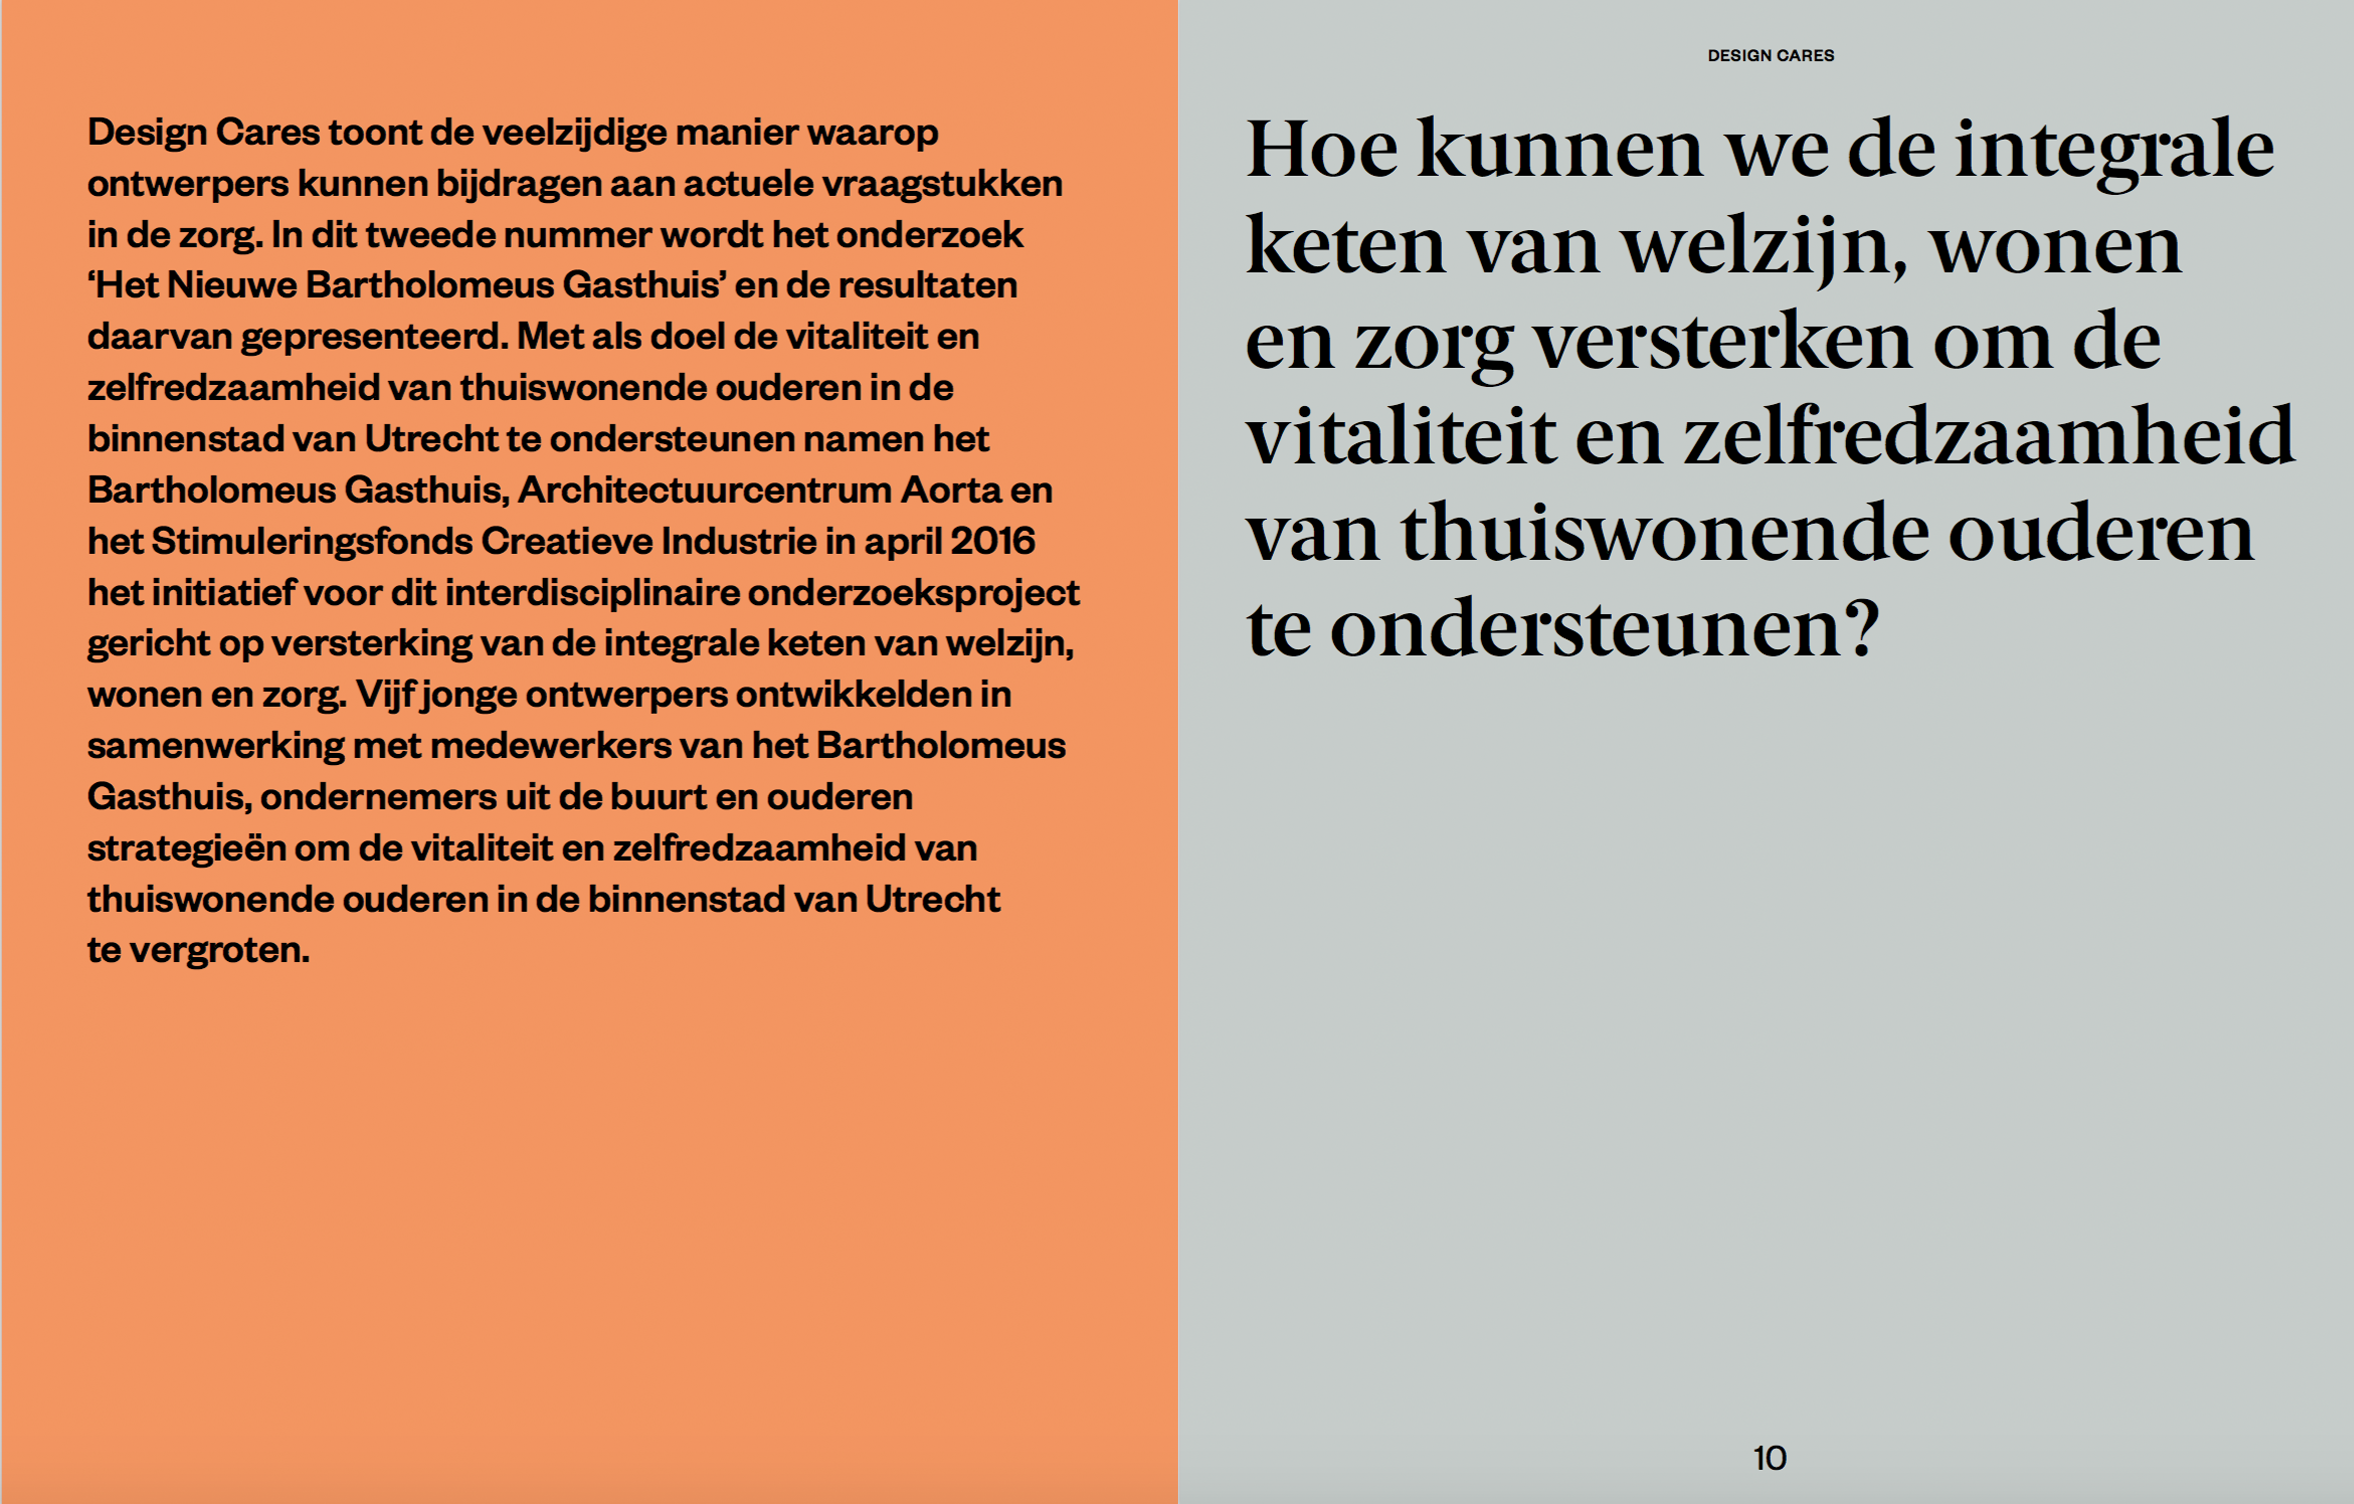 publicatie design cares